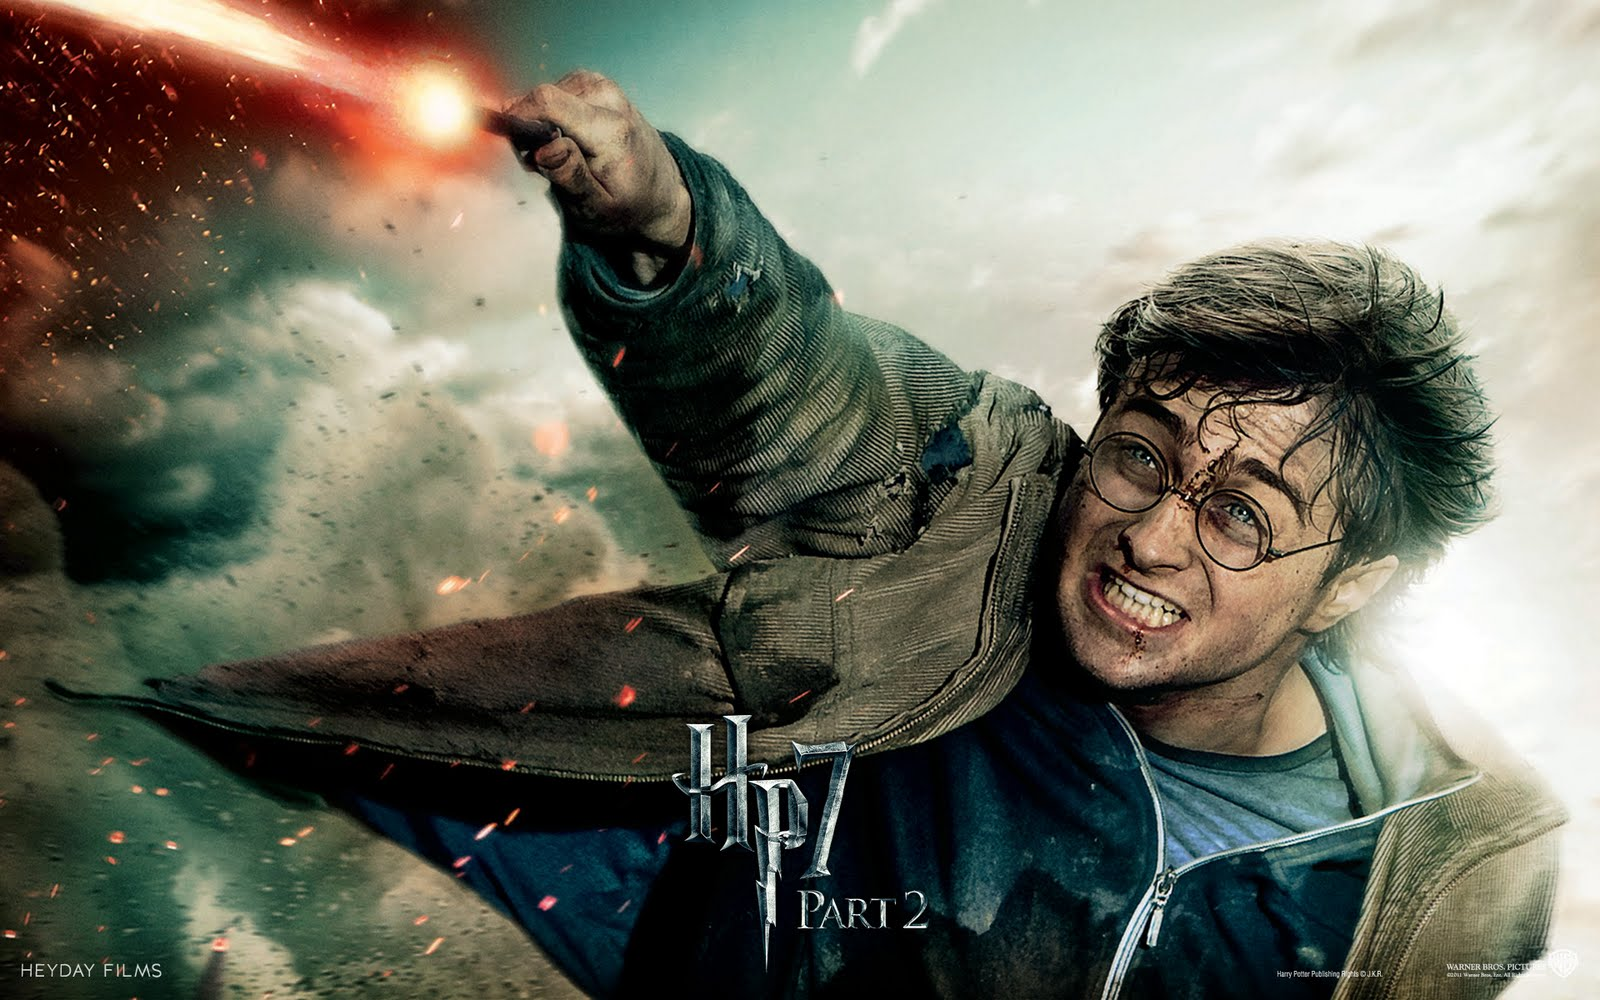 Download harry potter and the deathly hallows part 2 wallpapers harry potter and the deathly hallows part 2 wallpaper 4 toneelgroepblik Choice Image